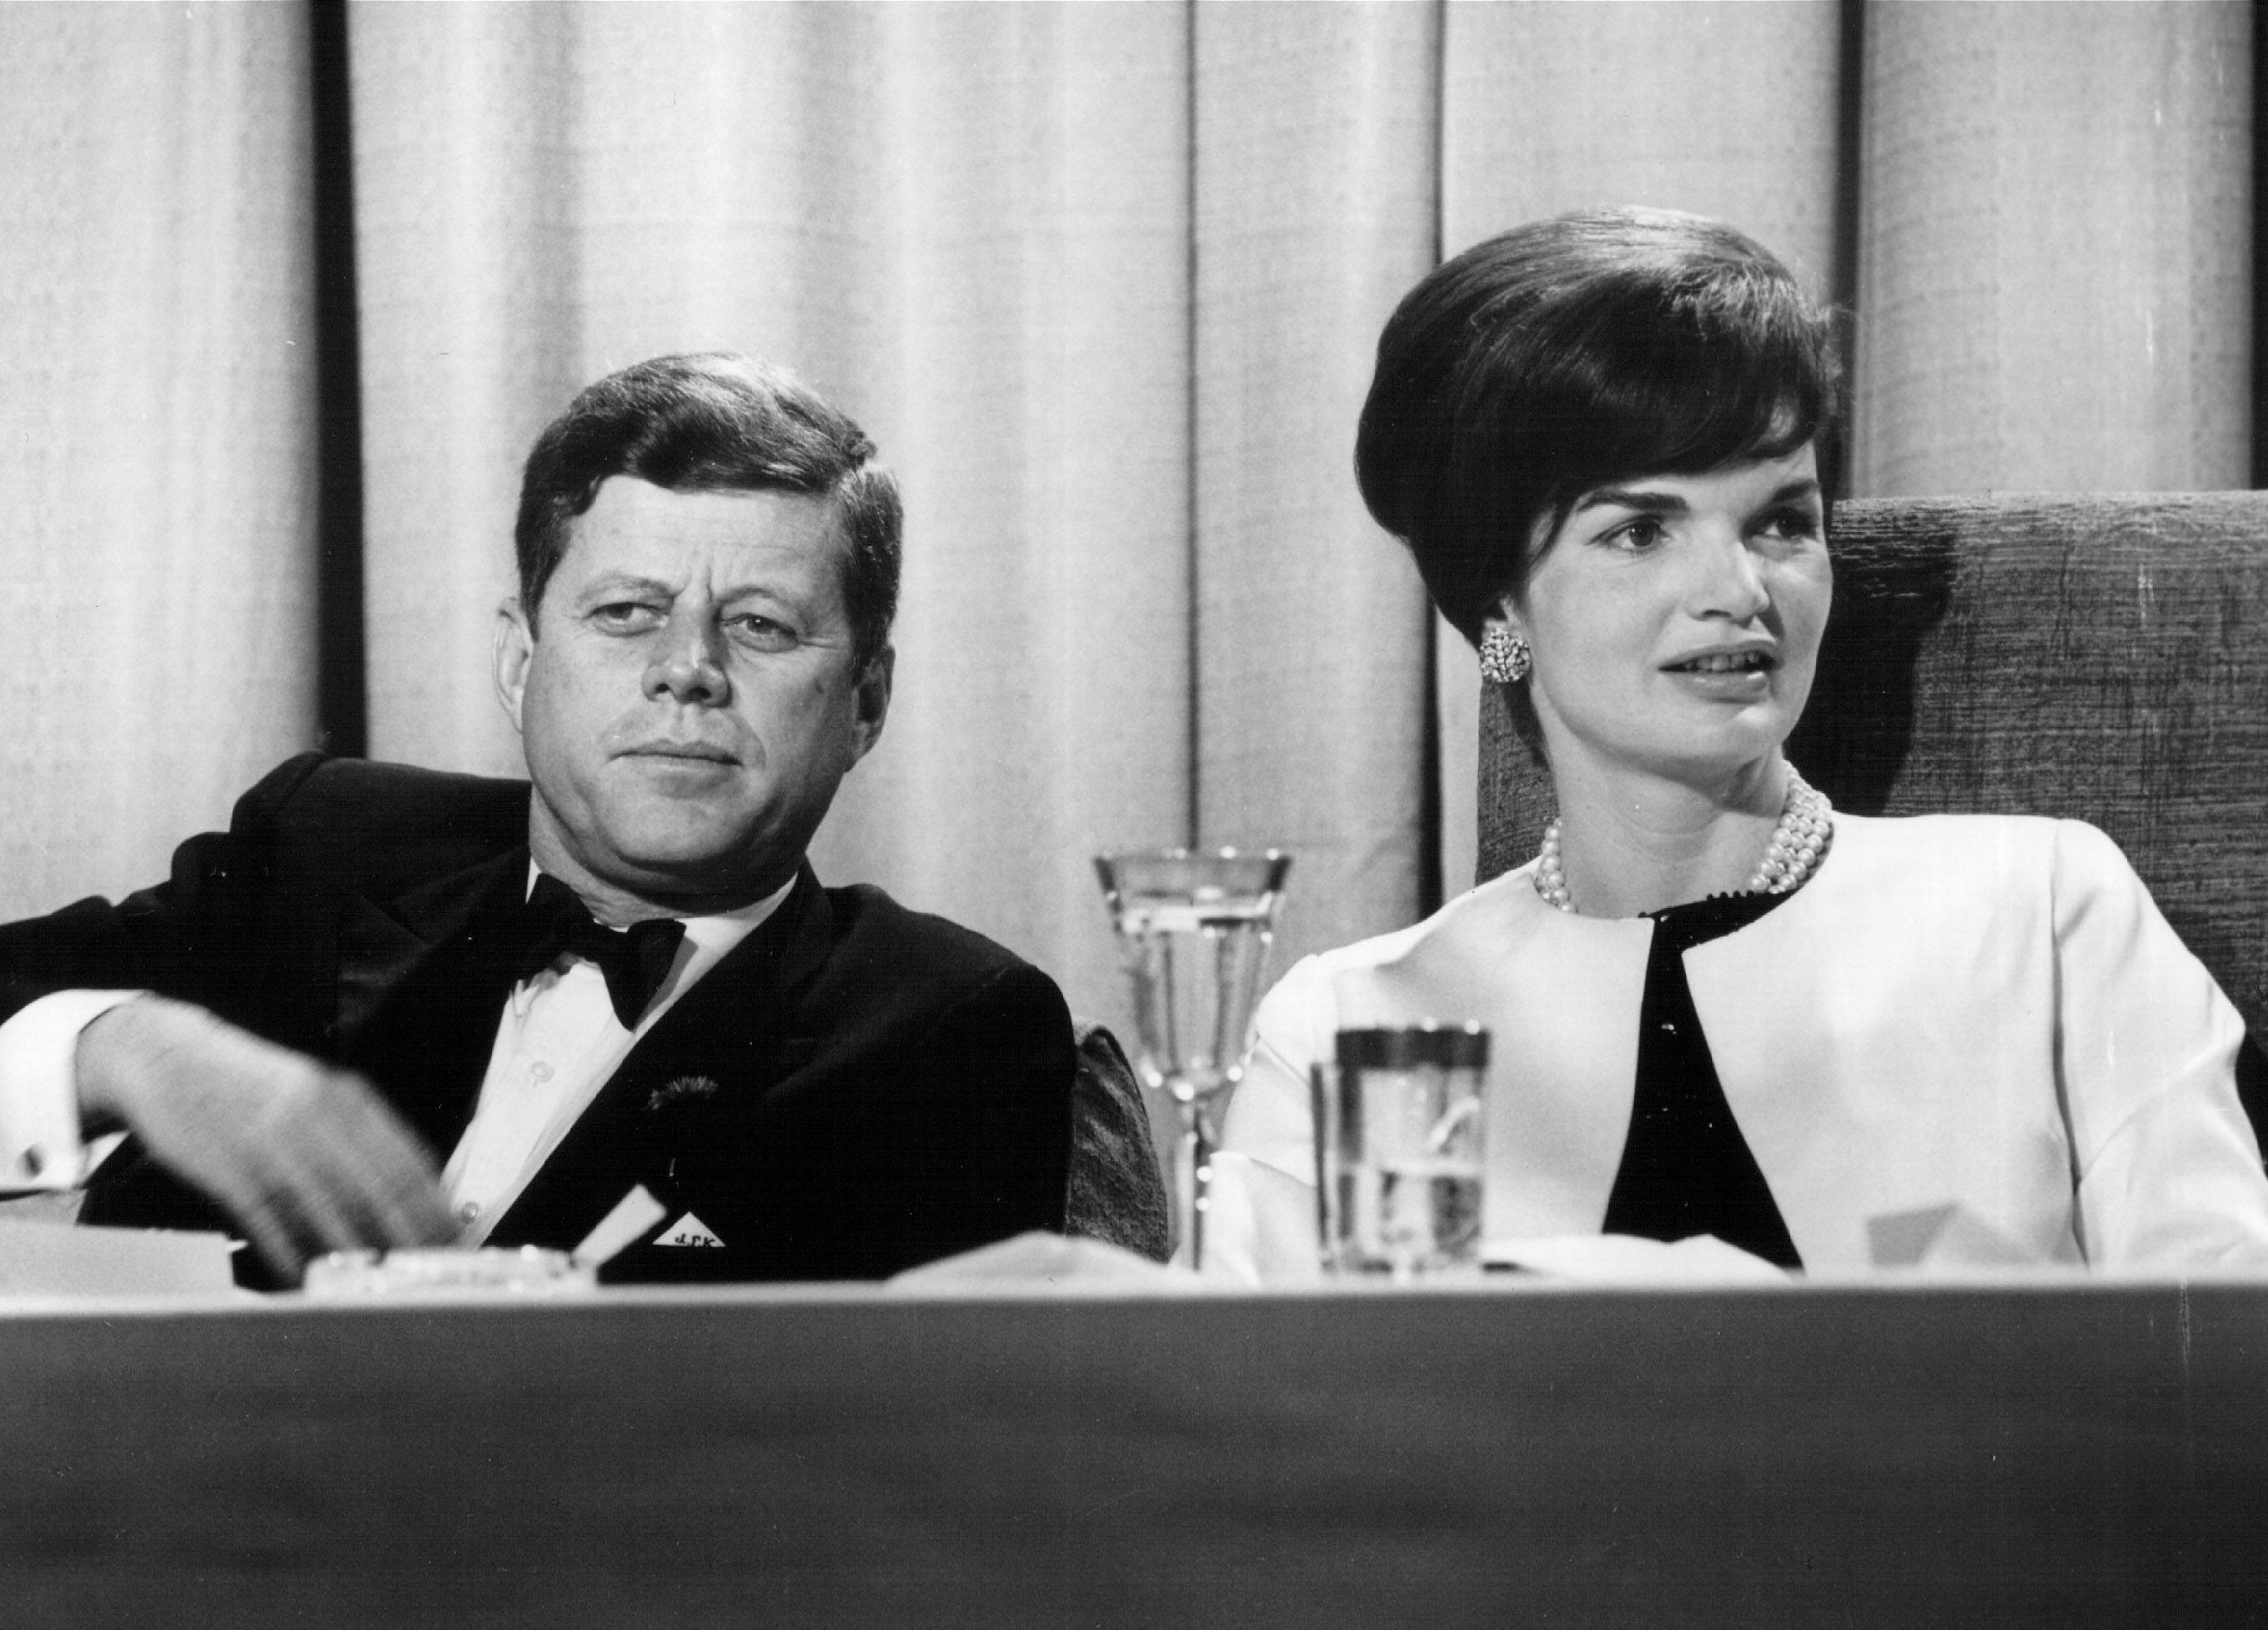 Surprising Secrets We Never Knew About Jfk And Jackie Kennedy Until Now Alien Wii Wiring Diagram